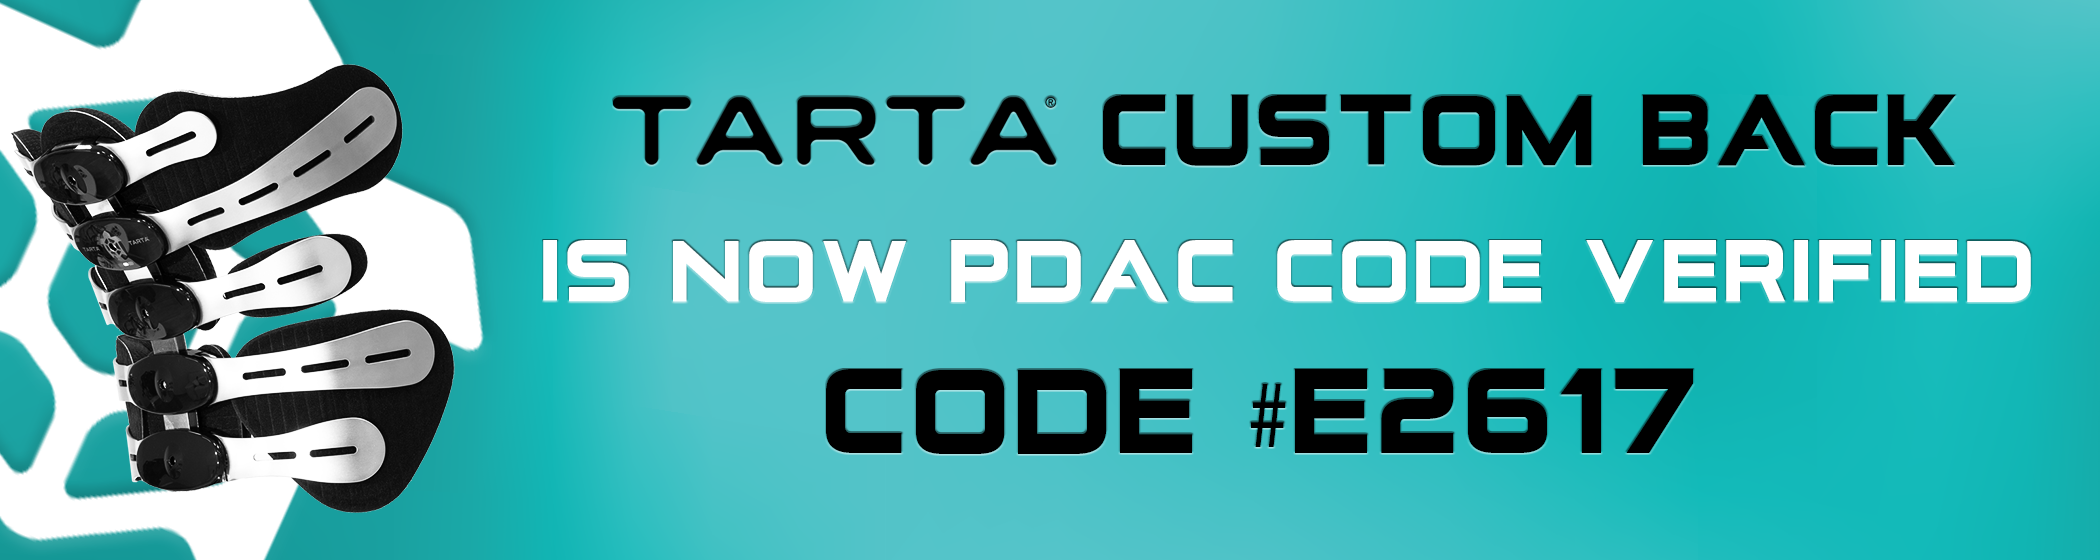 Tarta Now PDAC Code Verifed E2617